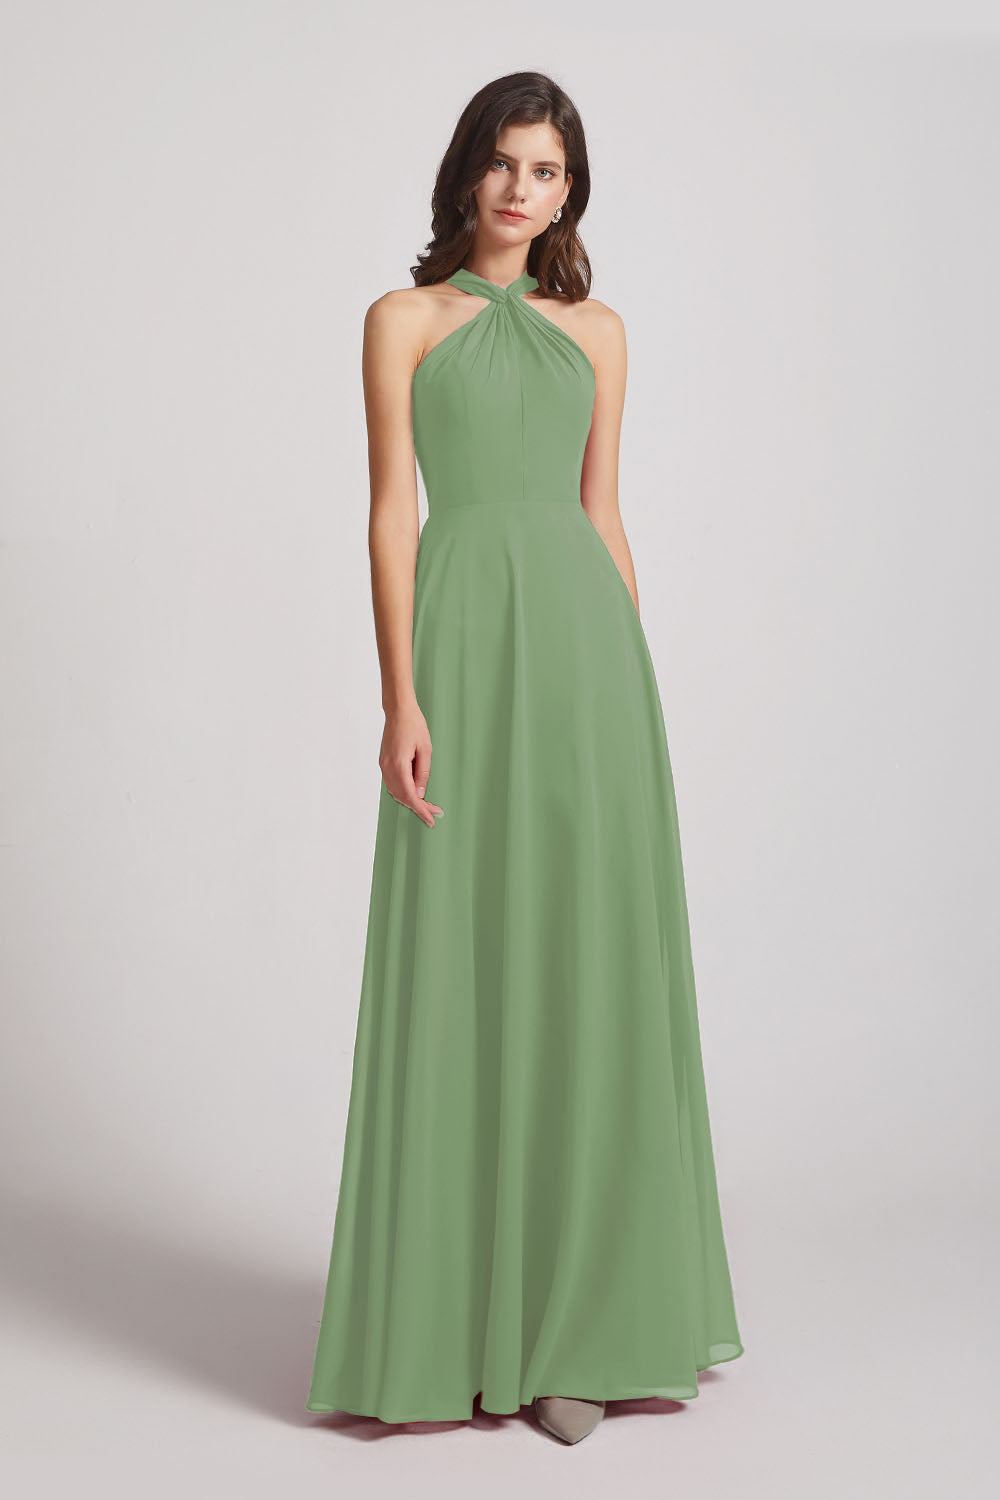 Alfa Bridal Seagrass Floor Length Chiffon Bridesmaid Dresses with Criss Cross Neckline (AF0113)